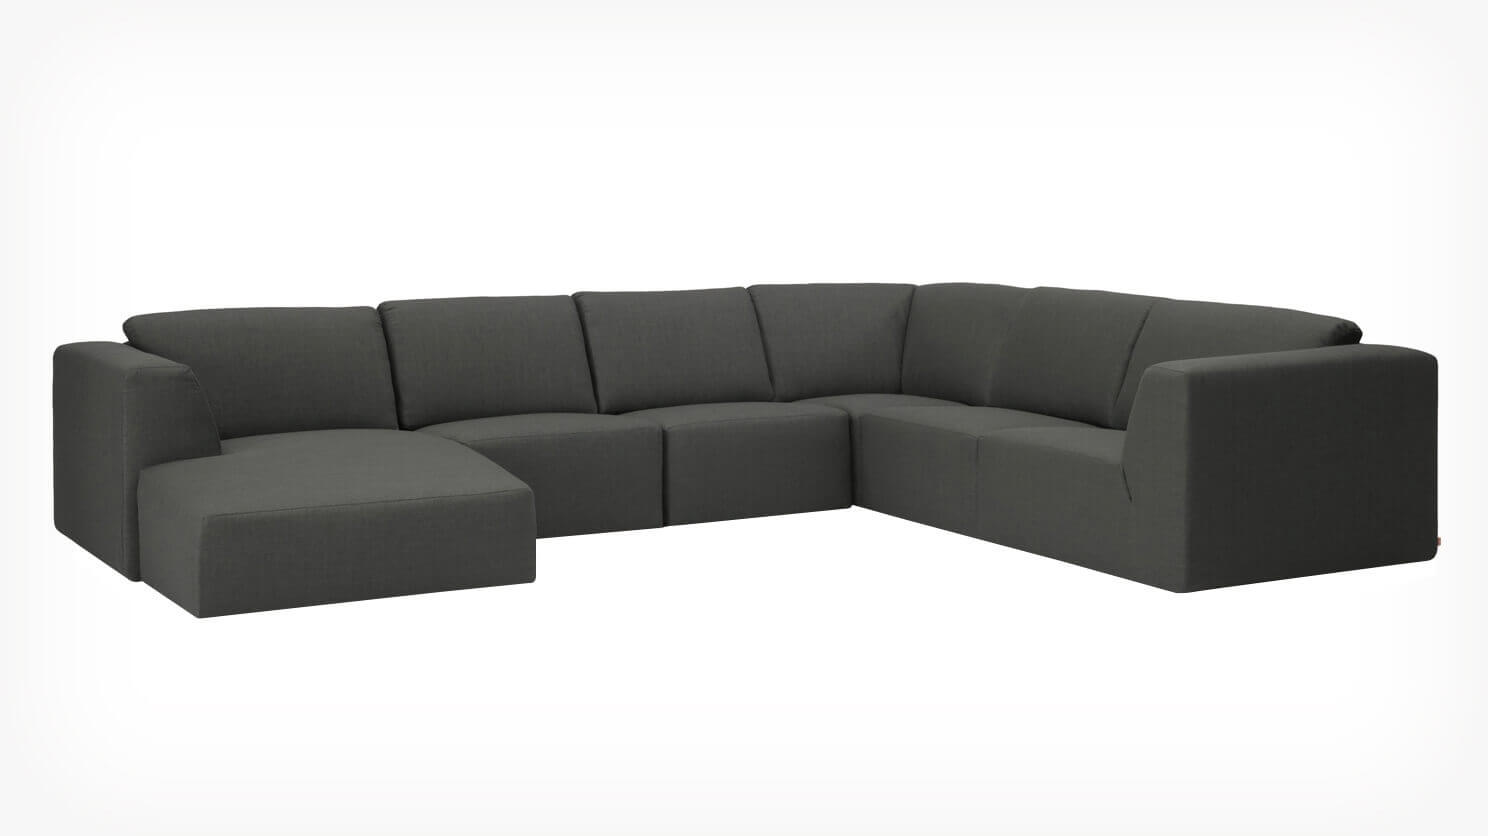 Morteens Sofa Morten 6 Piece Sectional Sofa With Chaise Fabric Eq3